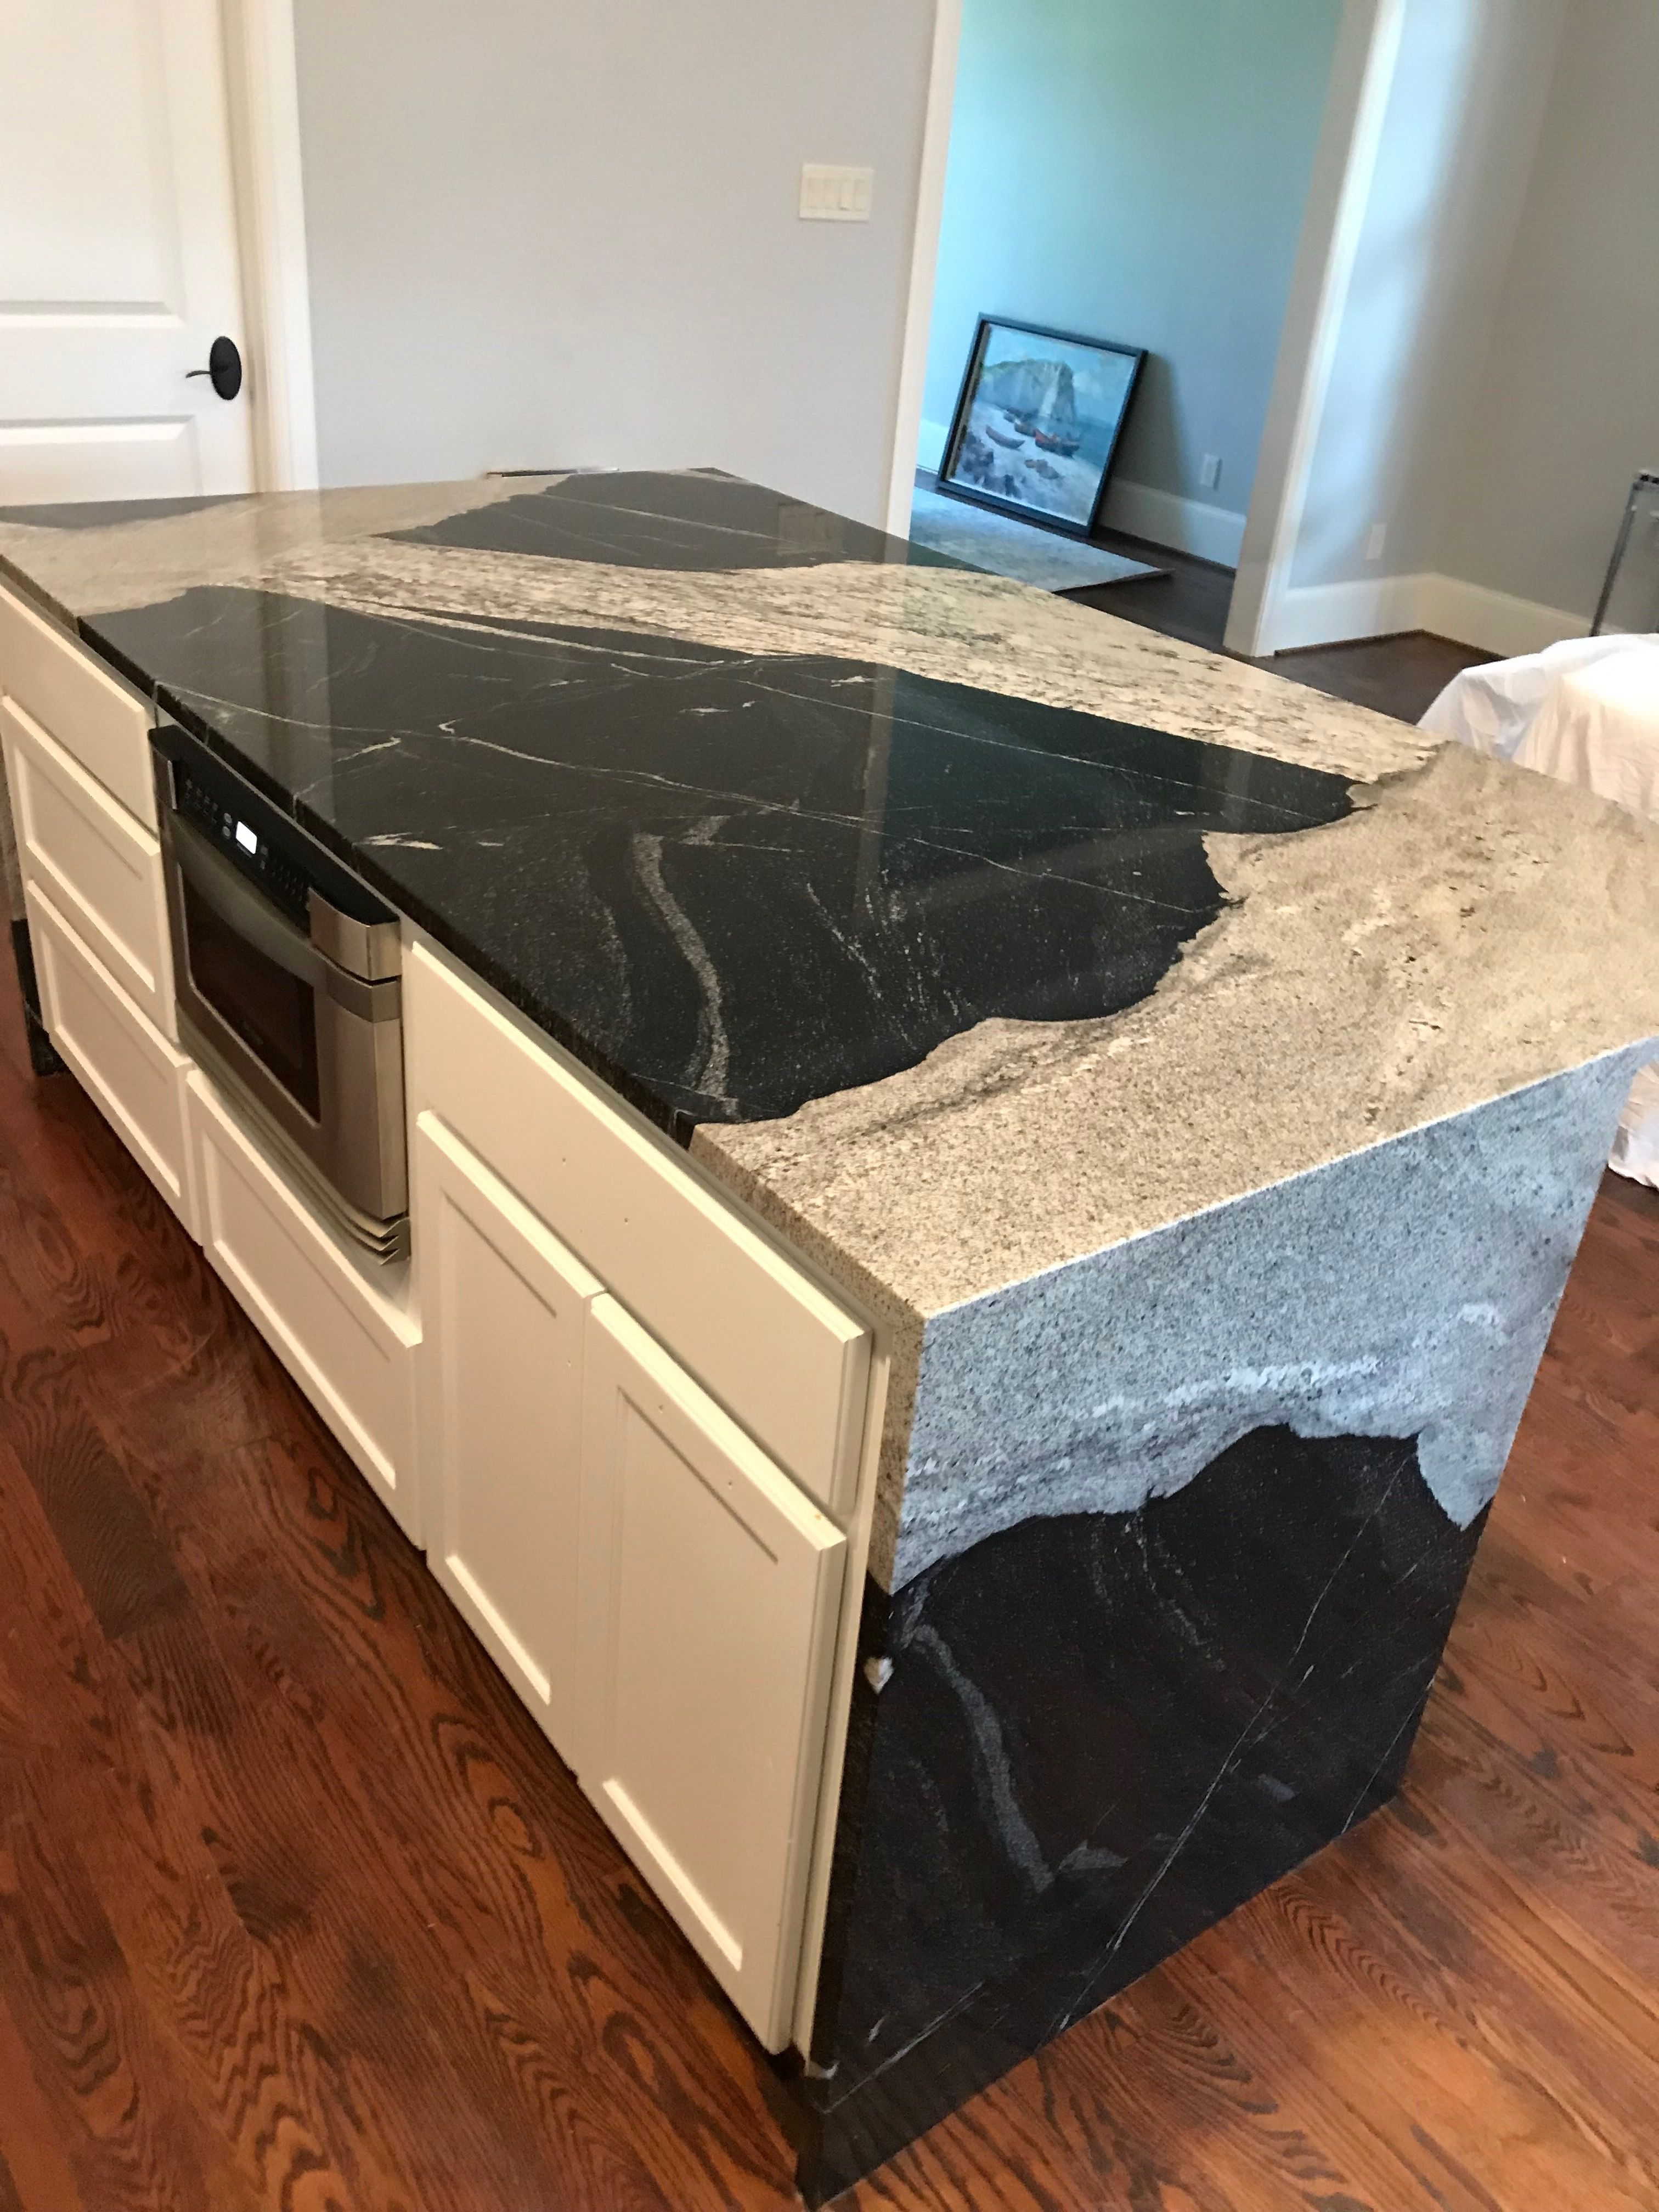 Pin On Kitchen Countertops By Allure Natural Stone